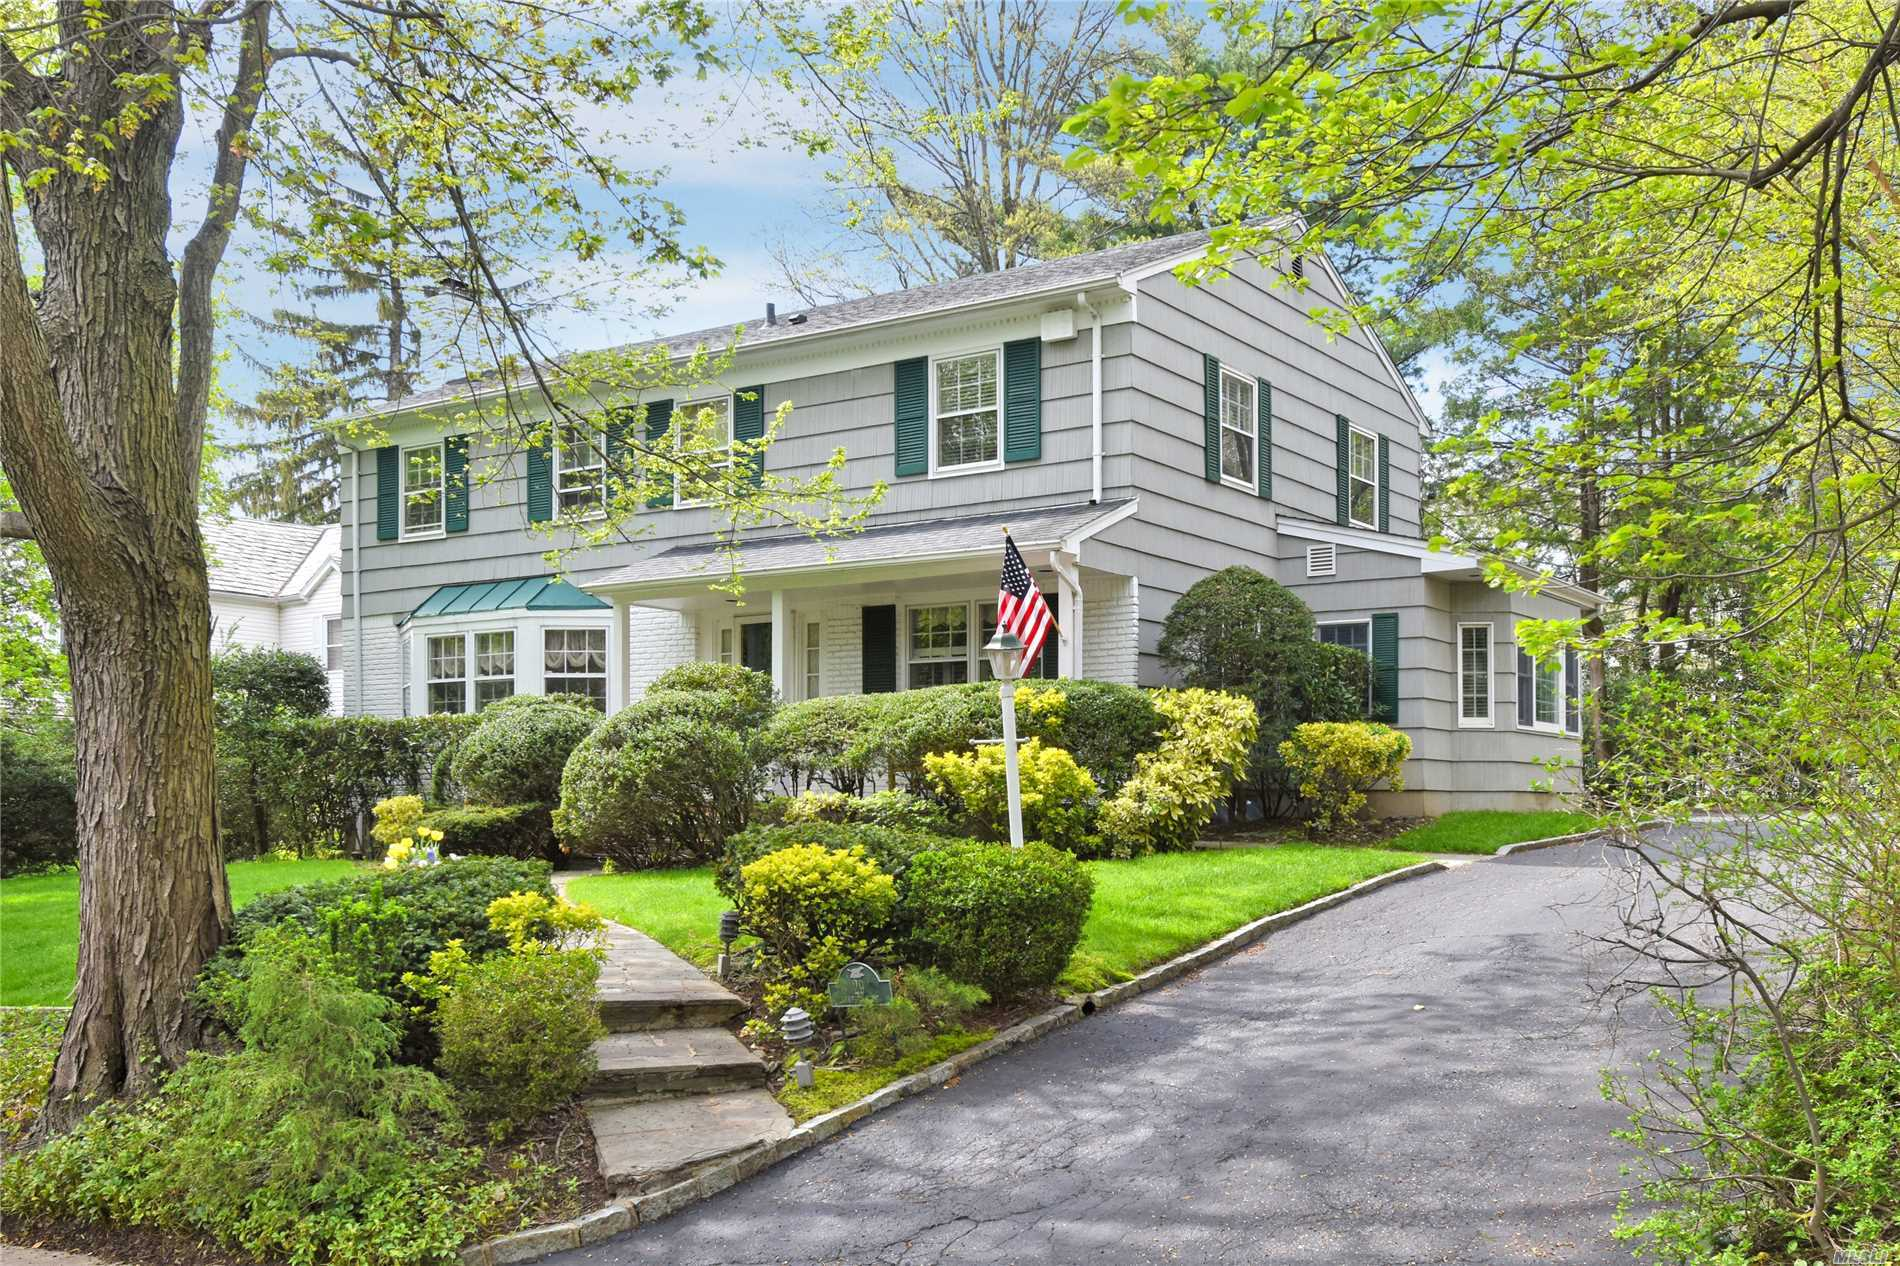 Welcome To This Sunny, South Facing Colonial In The Desirable Village of Russell Gardens W/ Private Community Pool/Tennis. Situated On A Beautiful Tree Lined St, Mins To Town, LIRR And Bus. Lg Entry Leads To LR W/Fpl, Huge Den With Cathedral Ceiling And Radiant Heated Floors Overlooking Private Yard. Renov EIK, DR, 1/2 Bth, Laundry On Main Level And 2 Car Garage. 2nd Floor Master Bdrm W/Full Bth And Walk-In Closets, 3 Add Bdrms W/Full Bth. Great Neck South Schools And Park District Amenities.